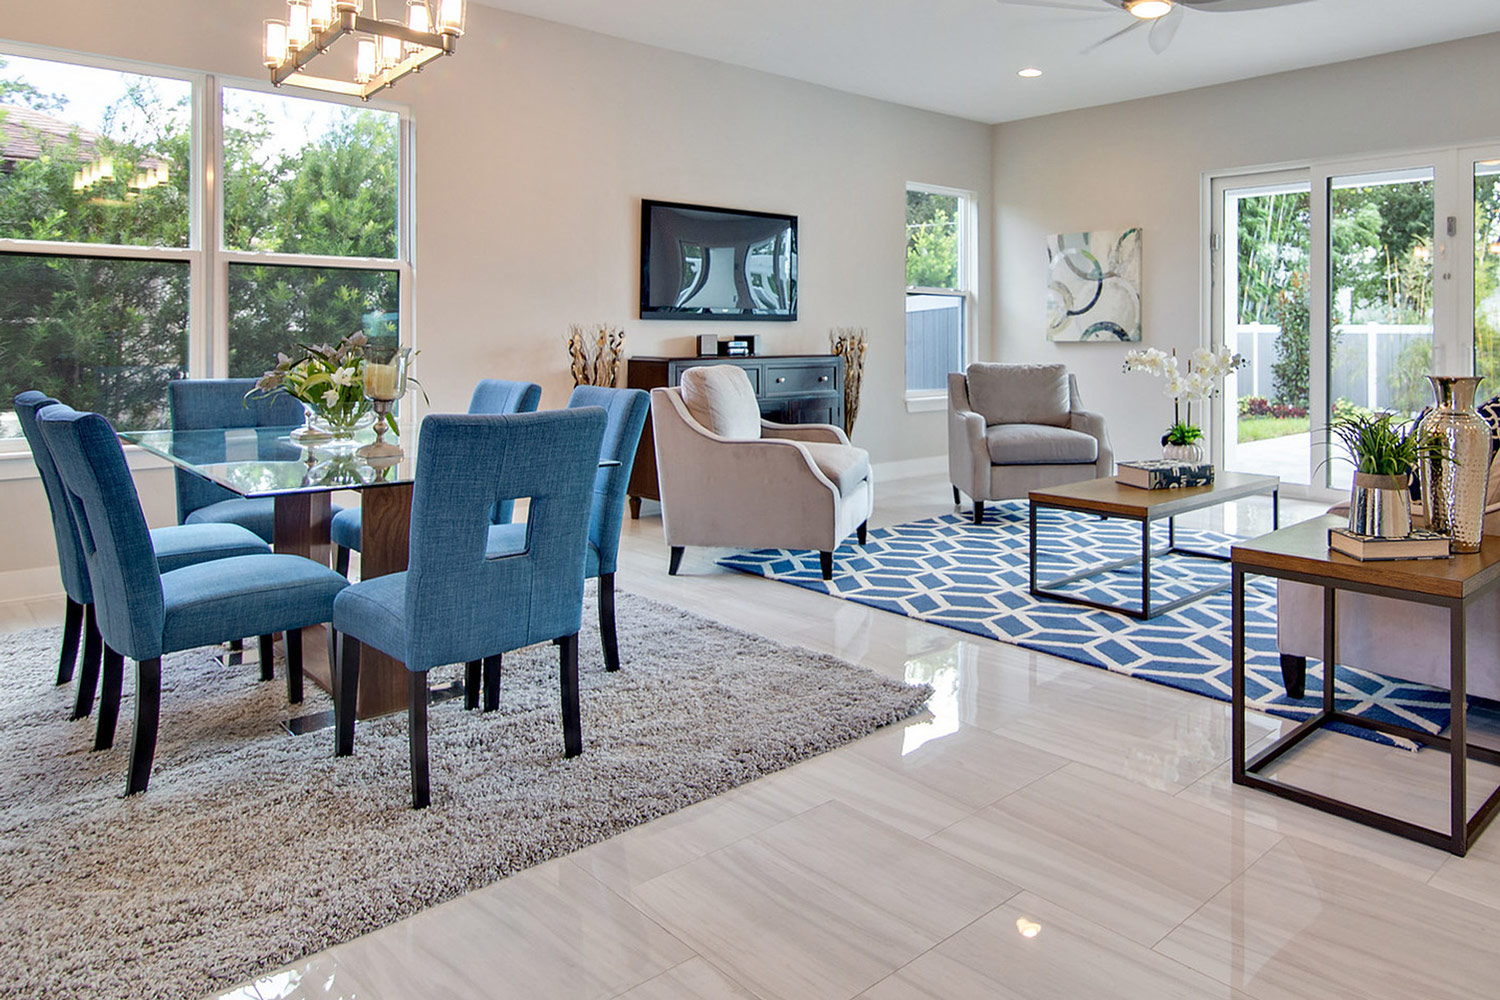 Staged Great Room - Home Staging Pros Orlando